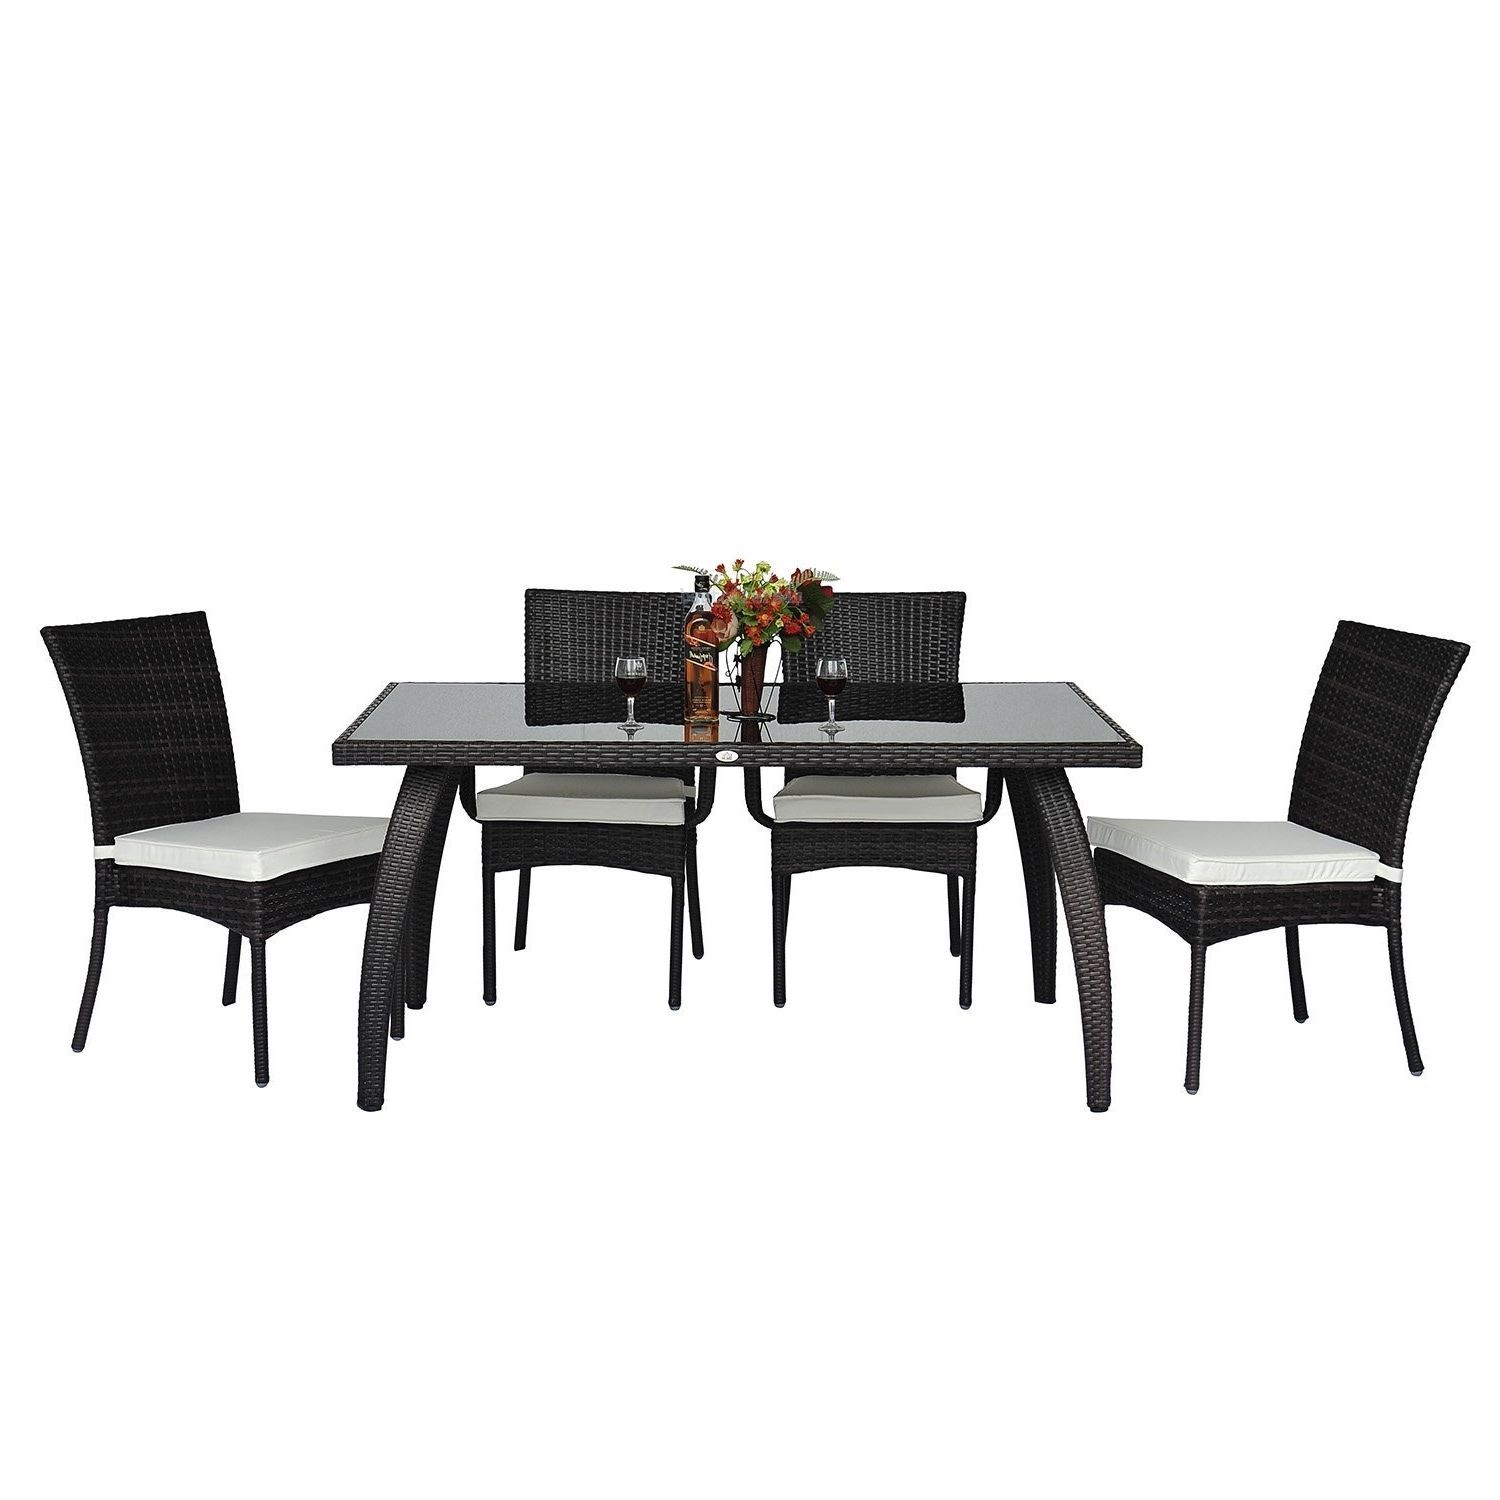 Rattan Garden Dining Set 7pcs Luxury Patio Furniture Rectangular Table 6 Chairs image 8